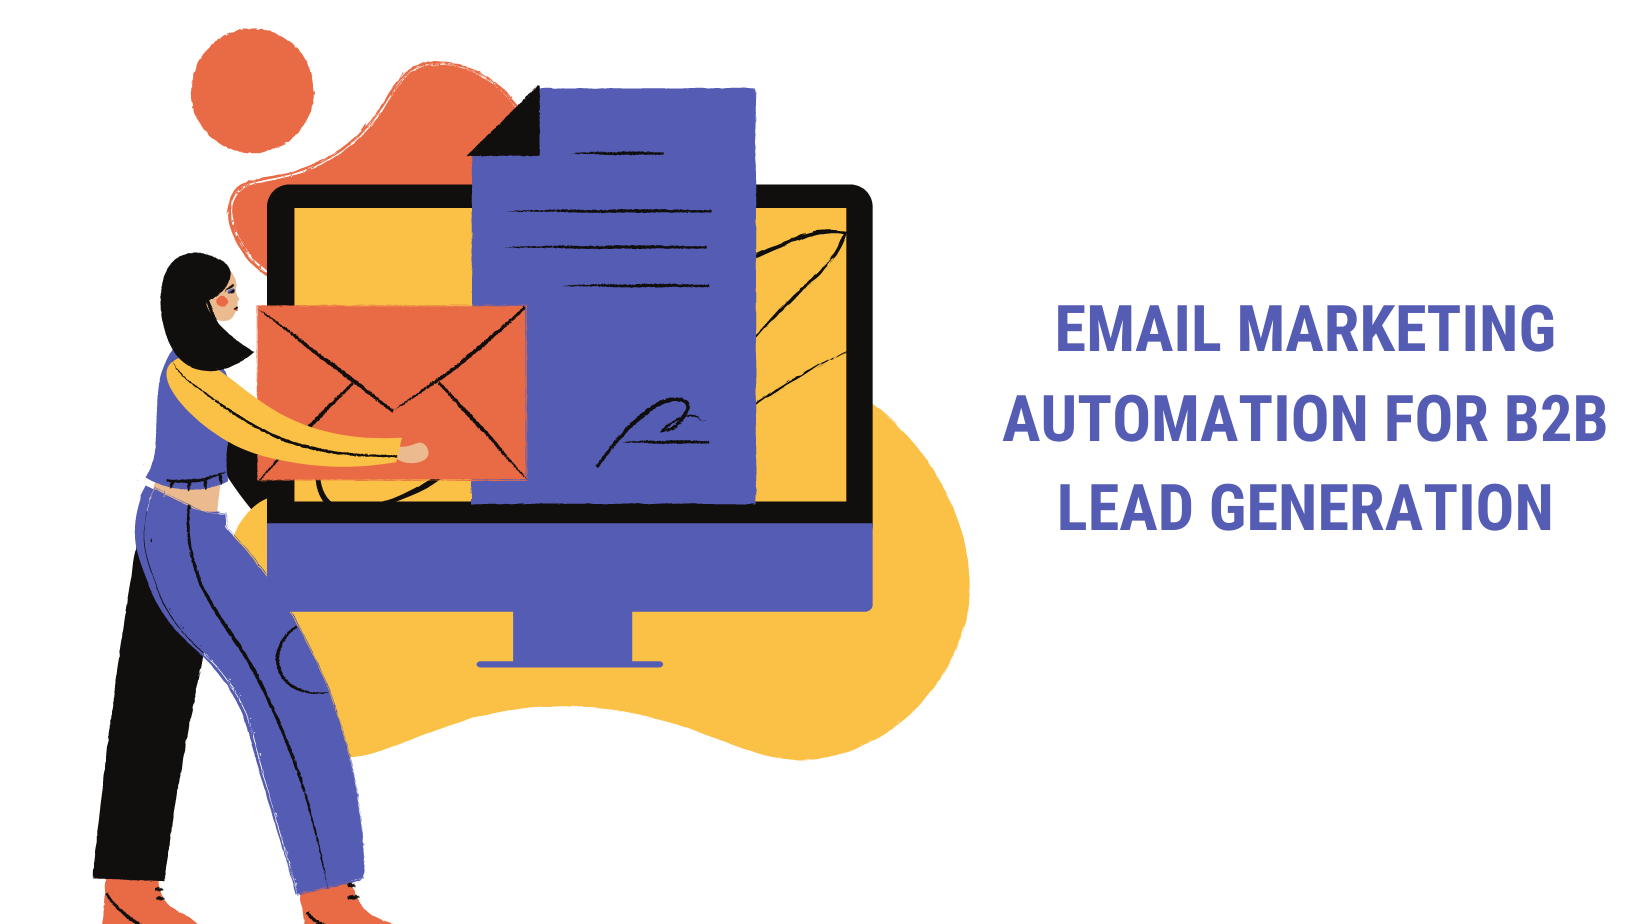 Email Marketing Automation for B2B lead generation in 2021